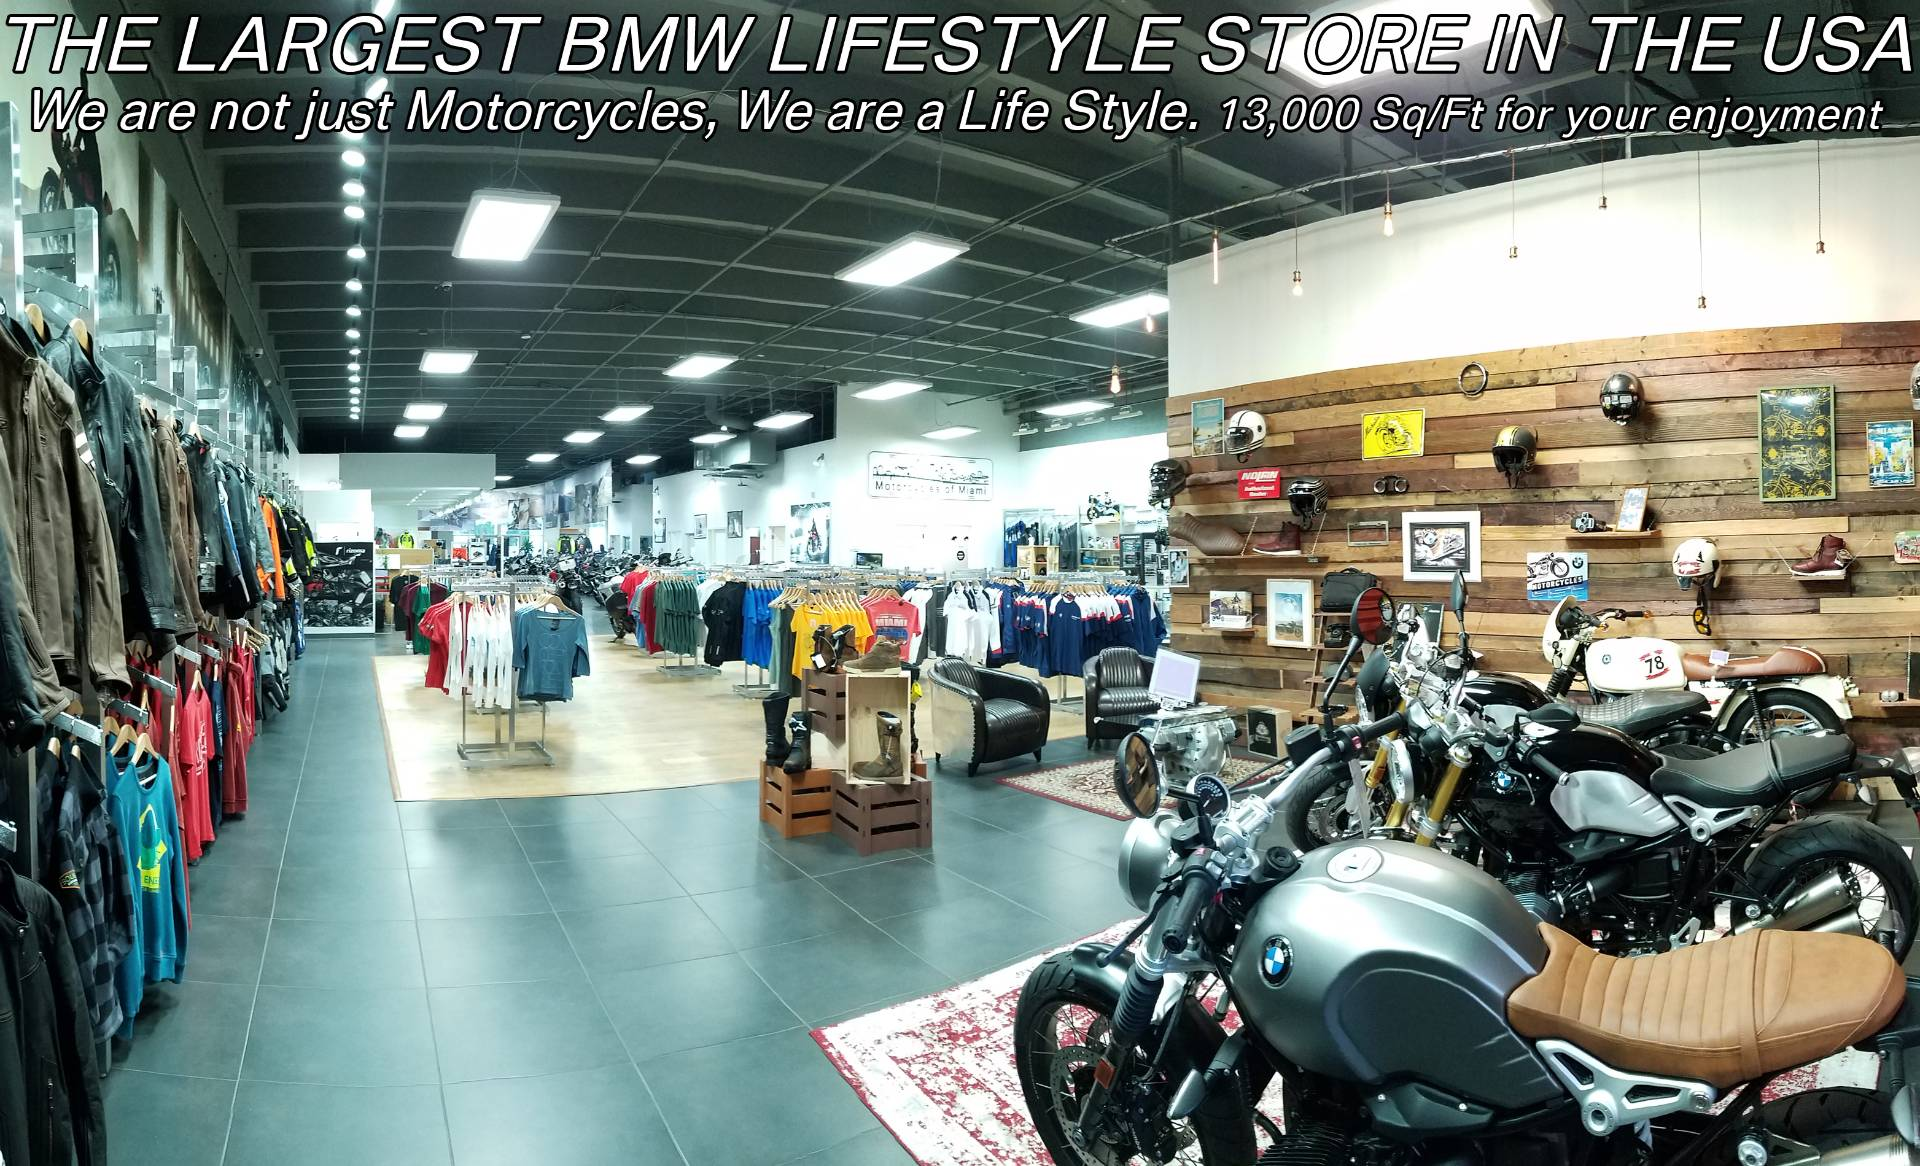 New 2019 BMW G 310 GS for sale, BMW G 310GS for sale, BMW Motorcycle G310GS, new BMW 310, Dual, BMW. BMW Motorcycles of Miami, Motorcycles of Miami, Motorcycles Miami, New Motorcycles, Used Motorcycles, pre-owned. #BMWMotorcyclesOfMiami #MotorcyclesOfMiami - Photo 18